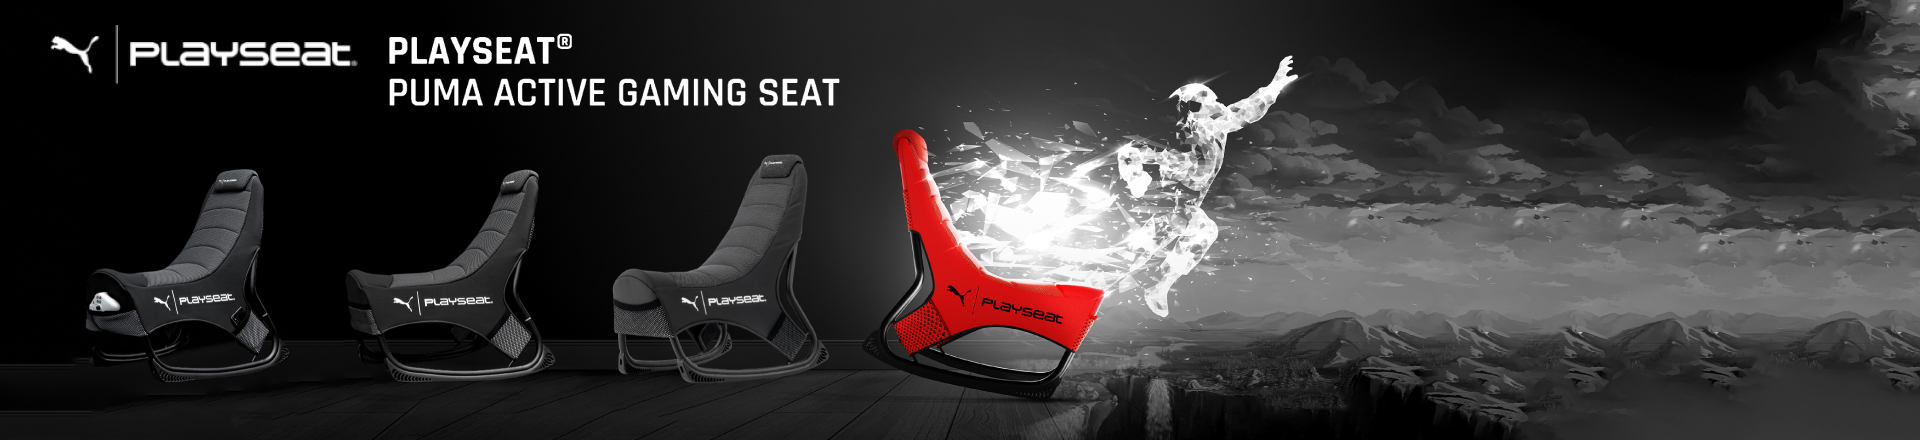 puma-playseat-banner.jpg